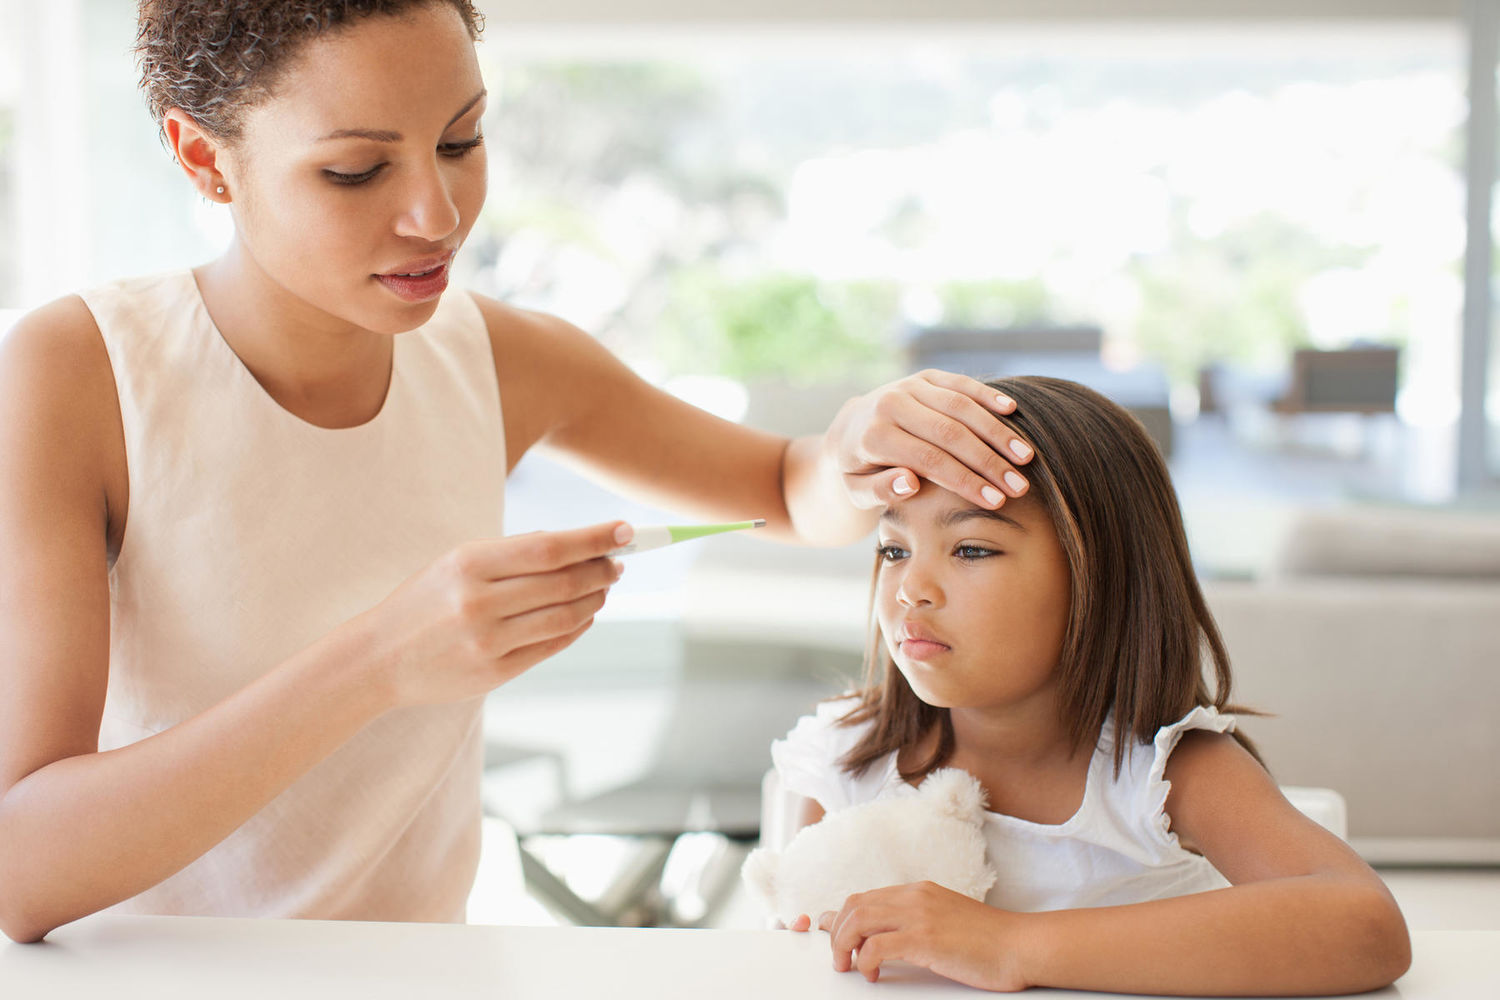 The Consequences of Single Motherhood